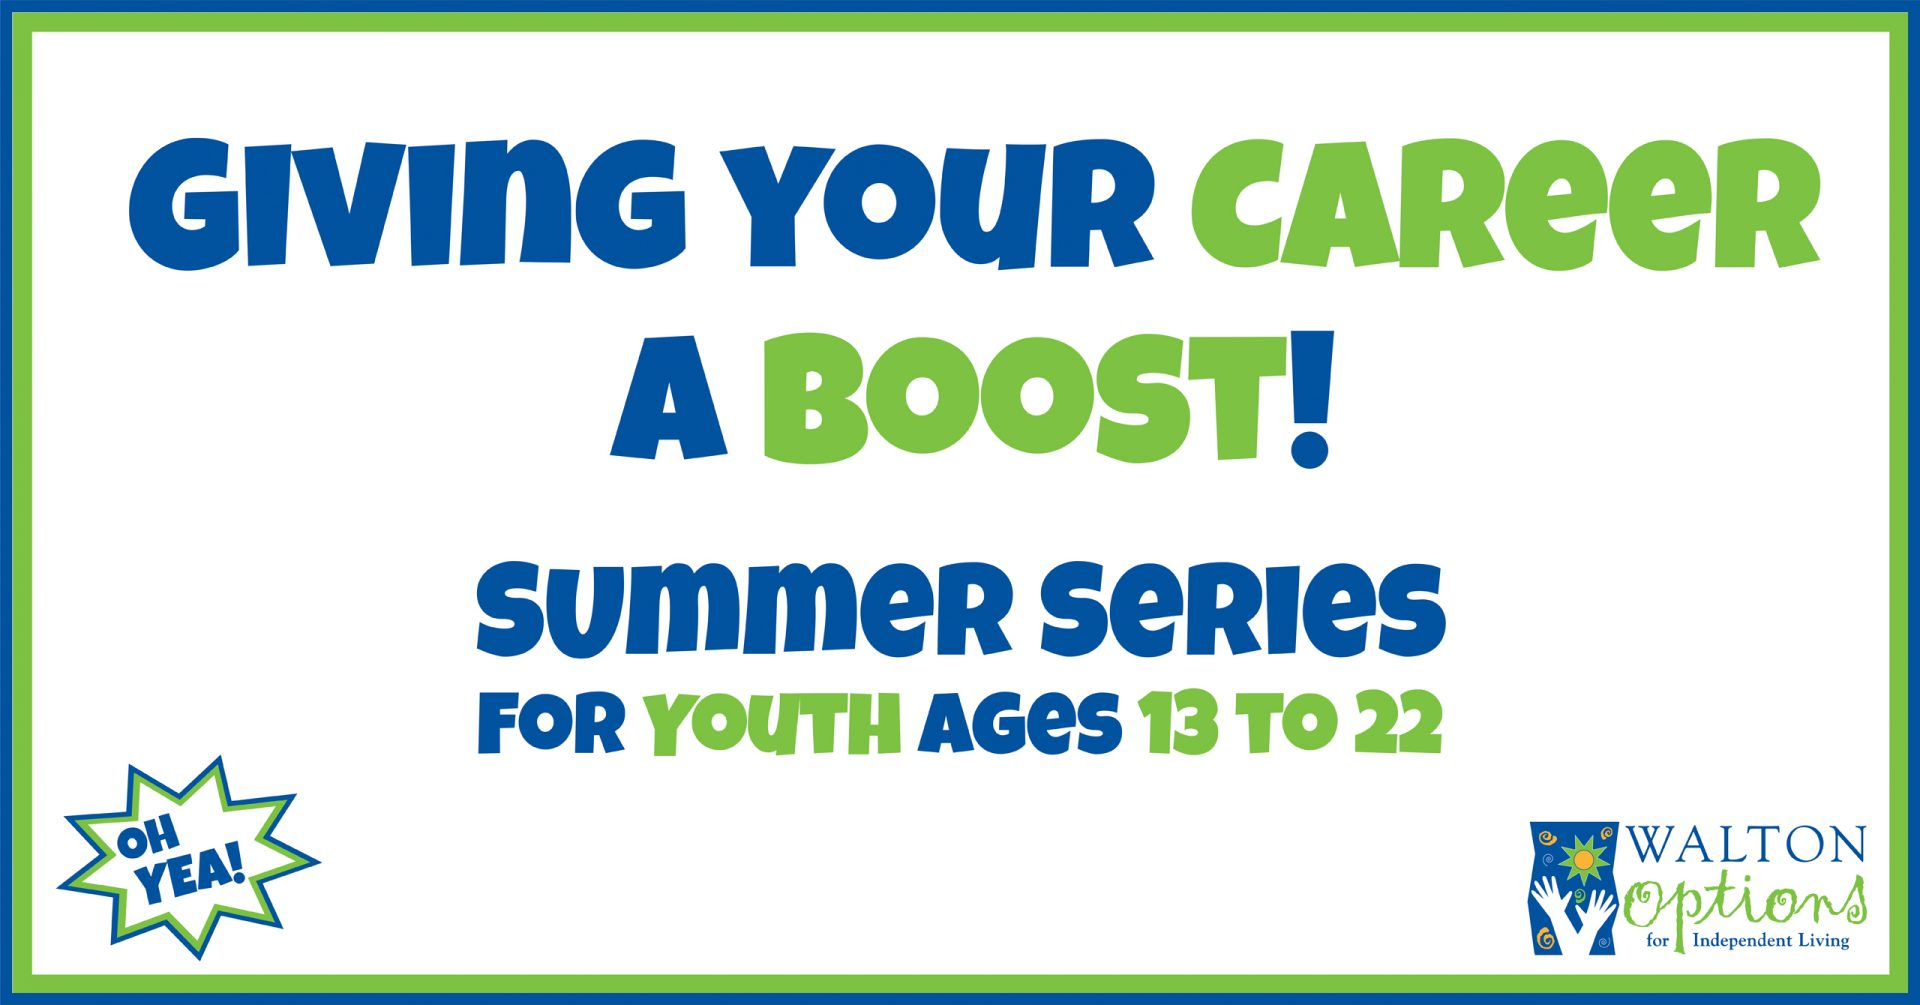 Header with stylized text: Giving Your Career a Boost! Summer Series for Youth Ages 13 to 22. The OH YEA! and Walton Options logo are in the lower right and left-hand corners. There is a green and blue border around the white box of text.